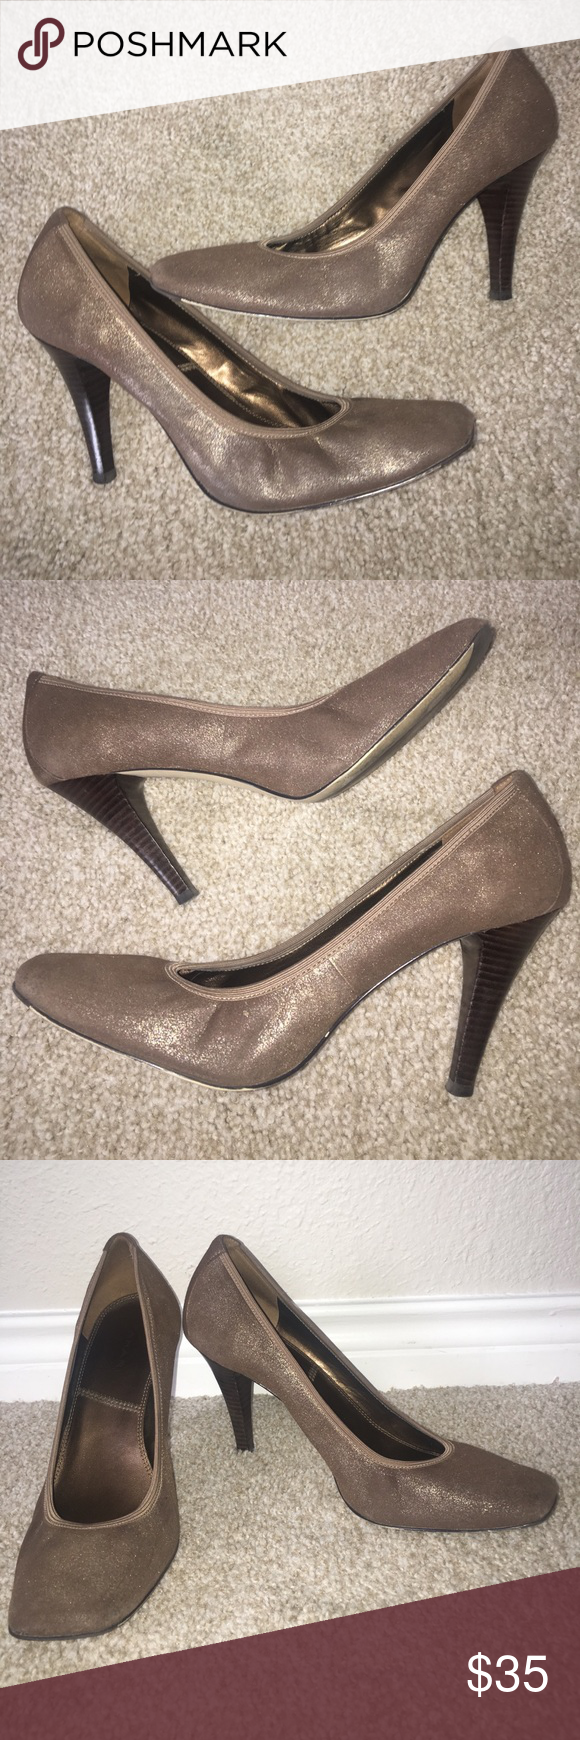 Tahari Pumps Heels Metallic Bronze Fabric Size 10 Worn twice.  Minor scuffs at back of heels, see pics.  Heel is 3.25 inches.  Style name is Ta-Enya and color is brush brass.  Comes with box. Tahari Shoes Heels